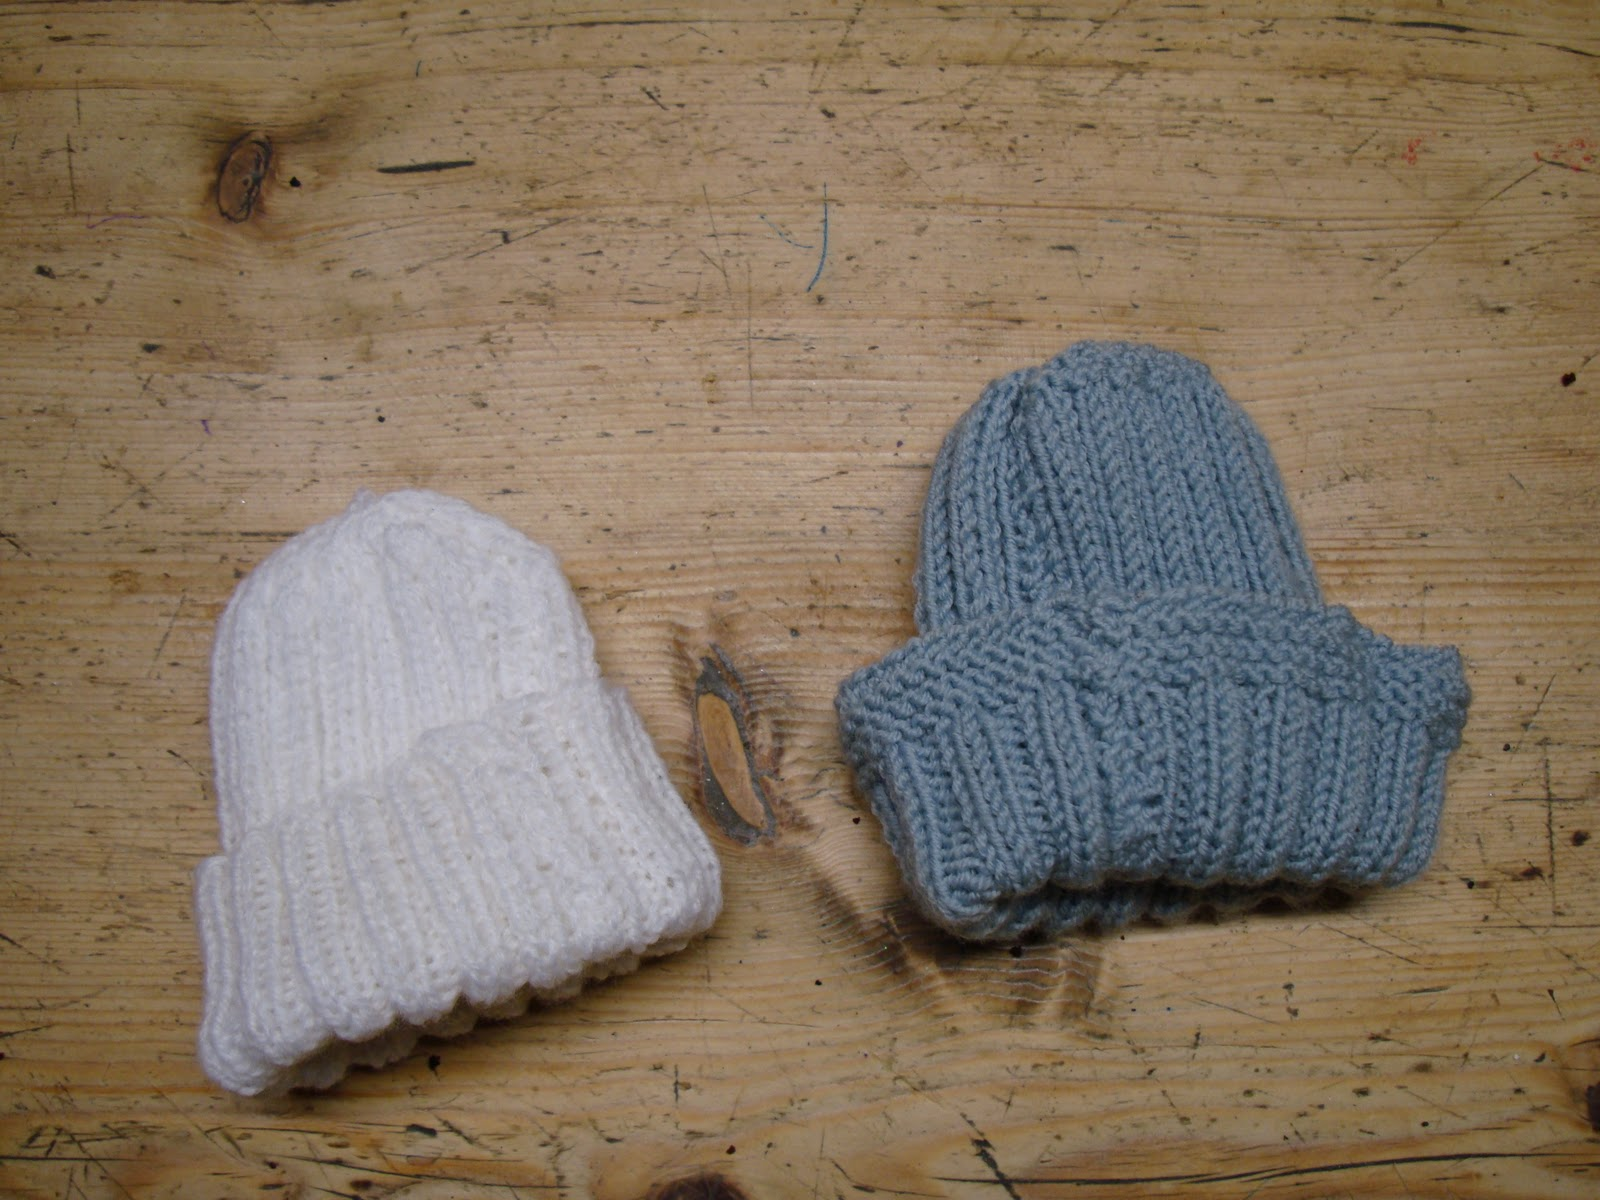 Knitting Pattern Preemie Baby Hat : Knit a hat for a premature baby